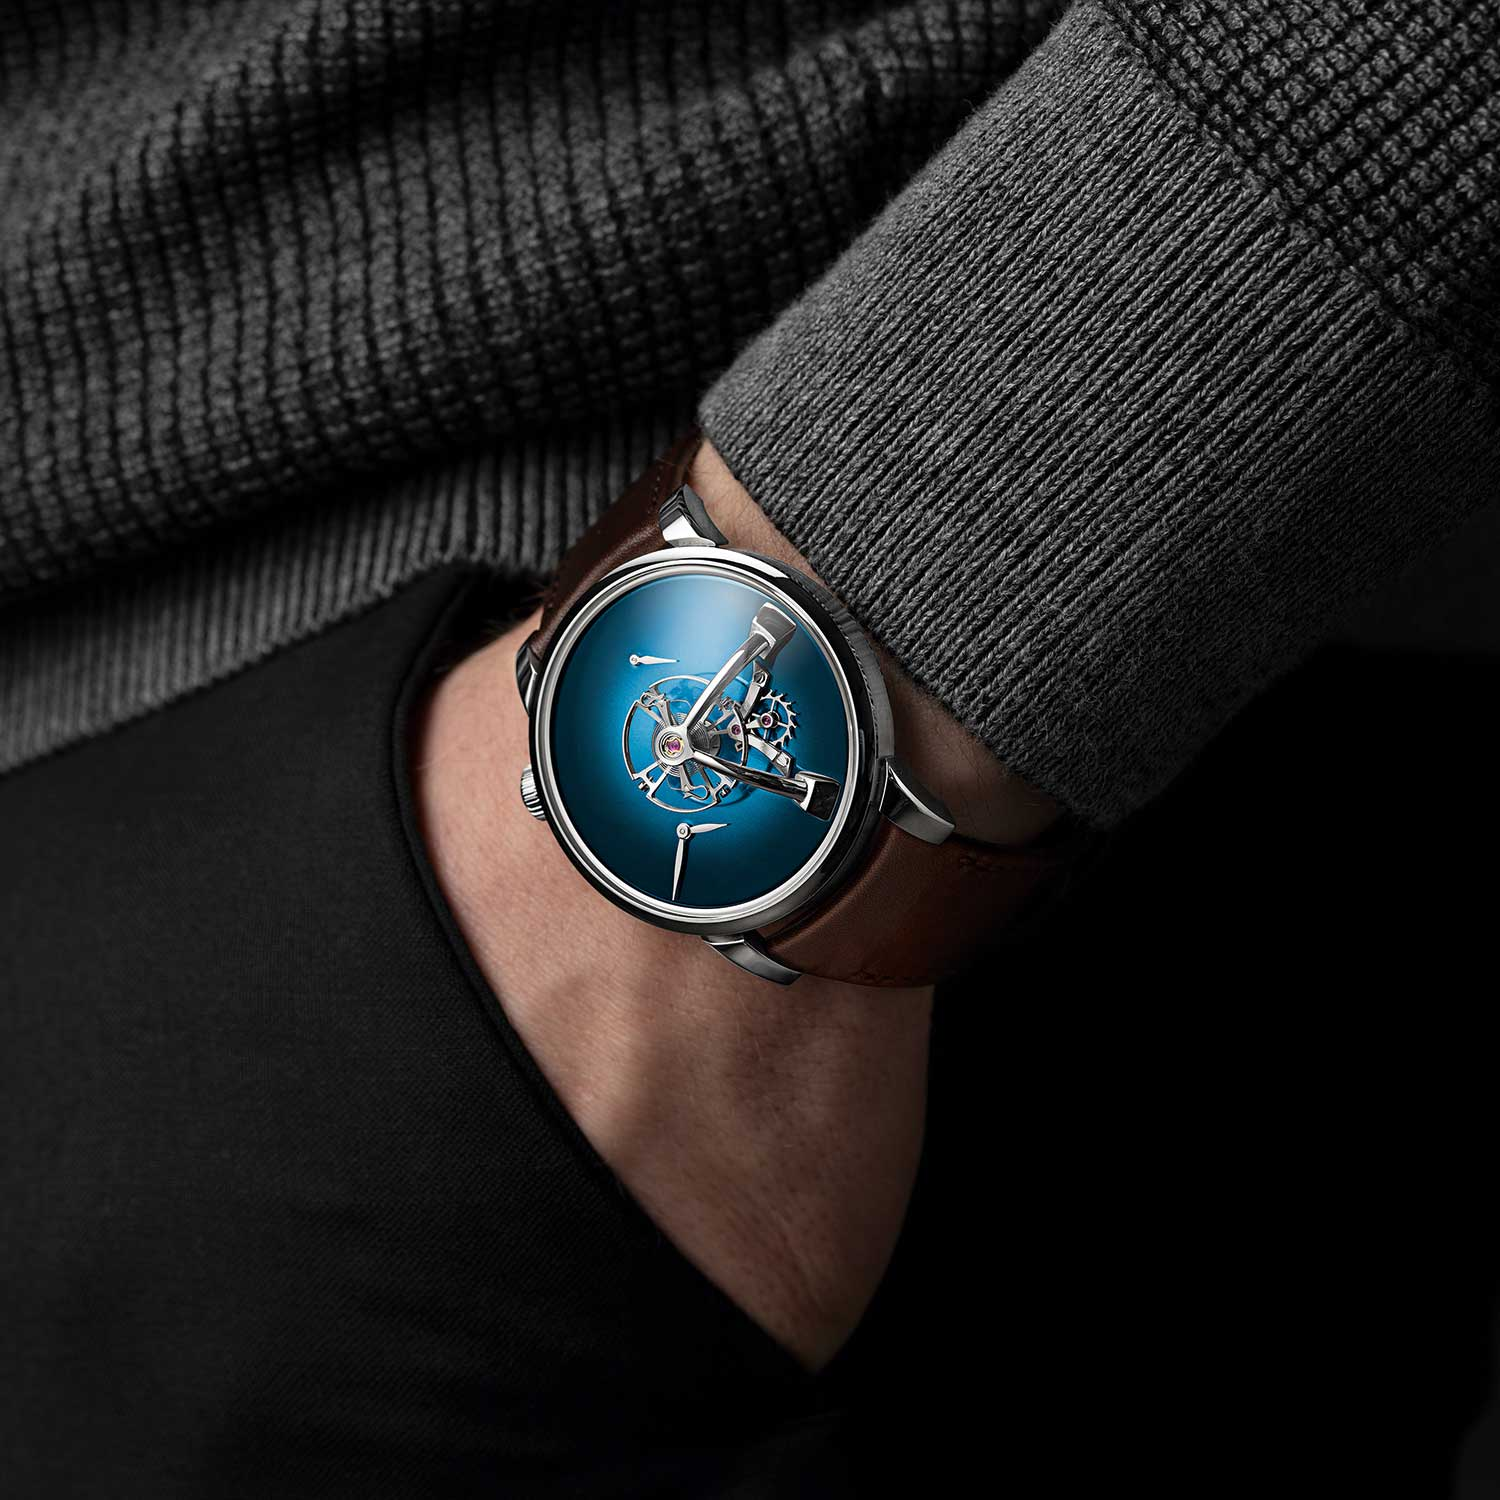 MB&F × H. Moser LM101 in Funky Blue on the wrist